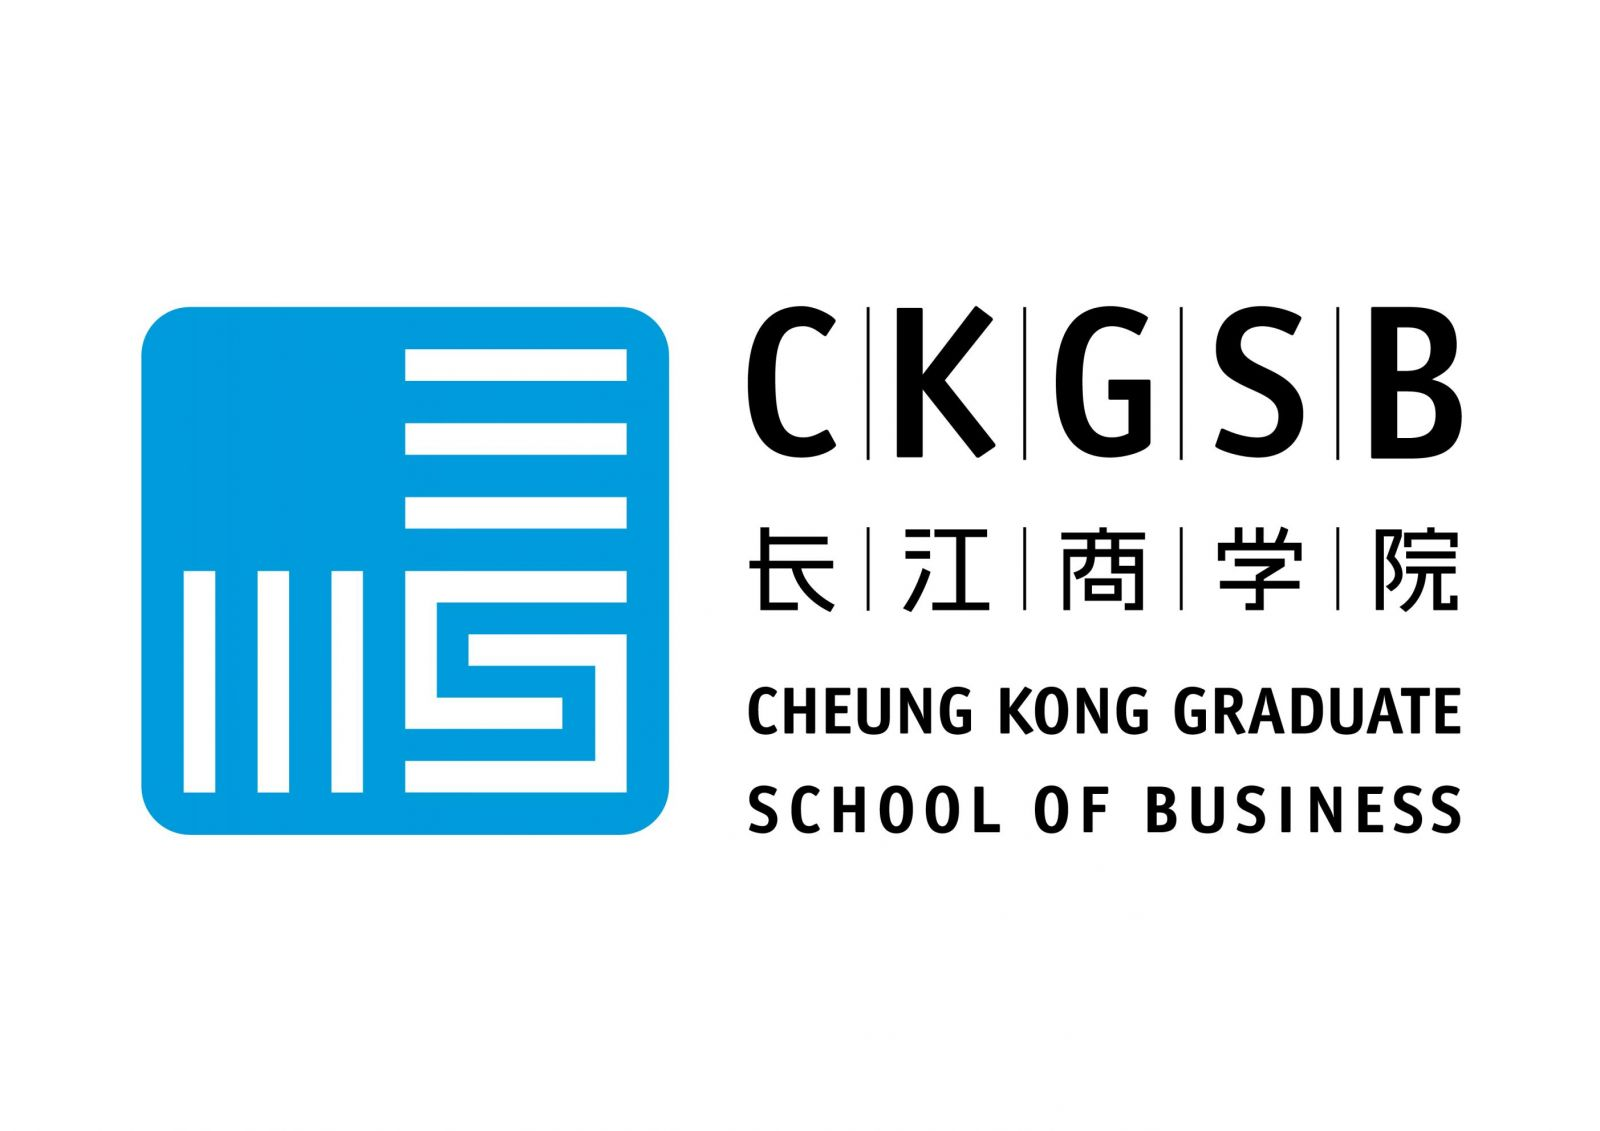 Cheung kong graduate school of business-worldwid-logo- CKGSB